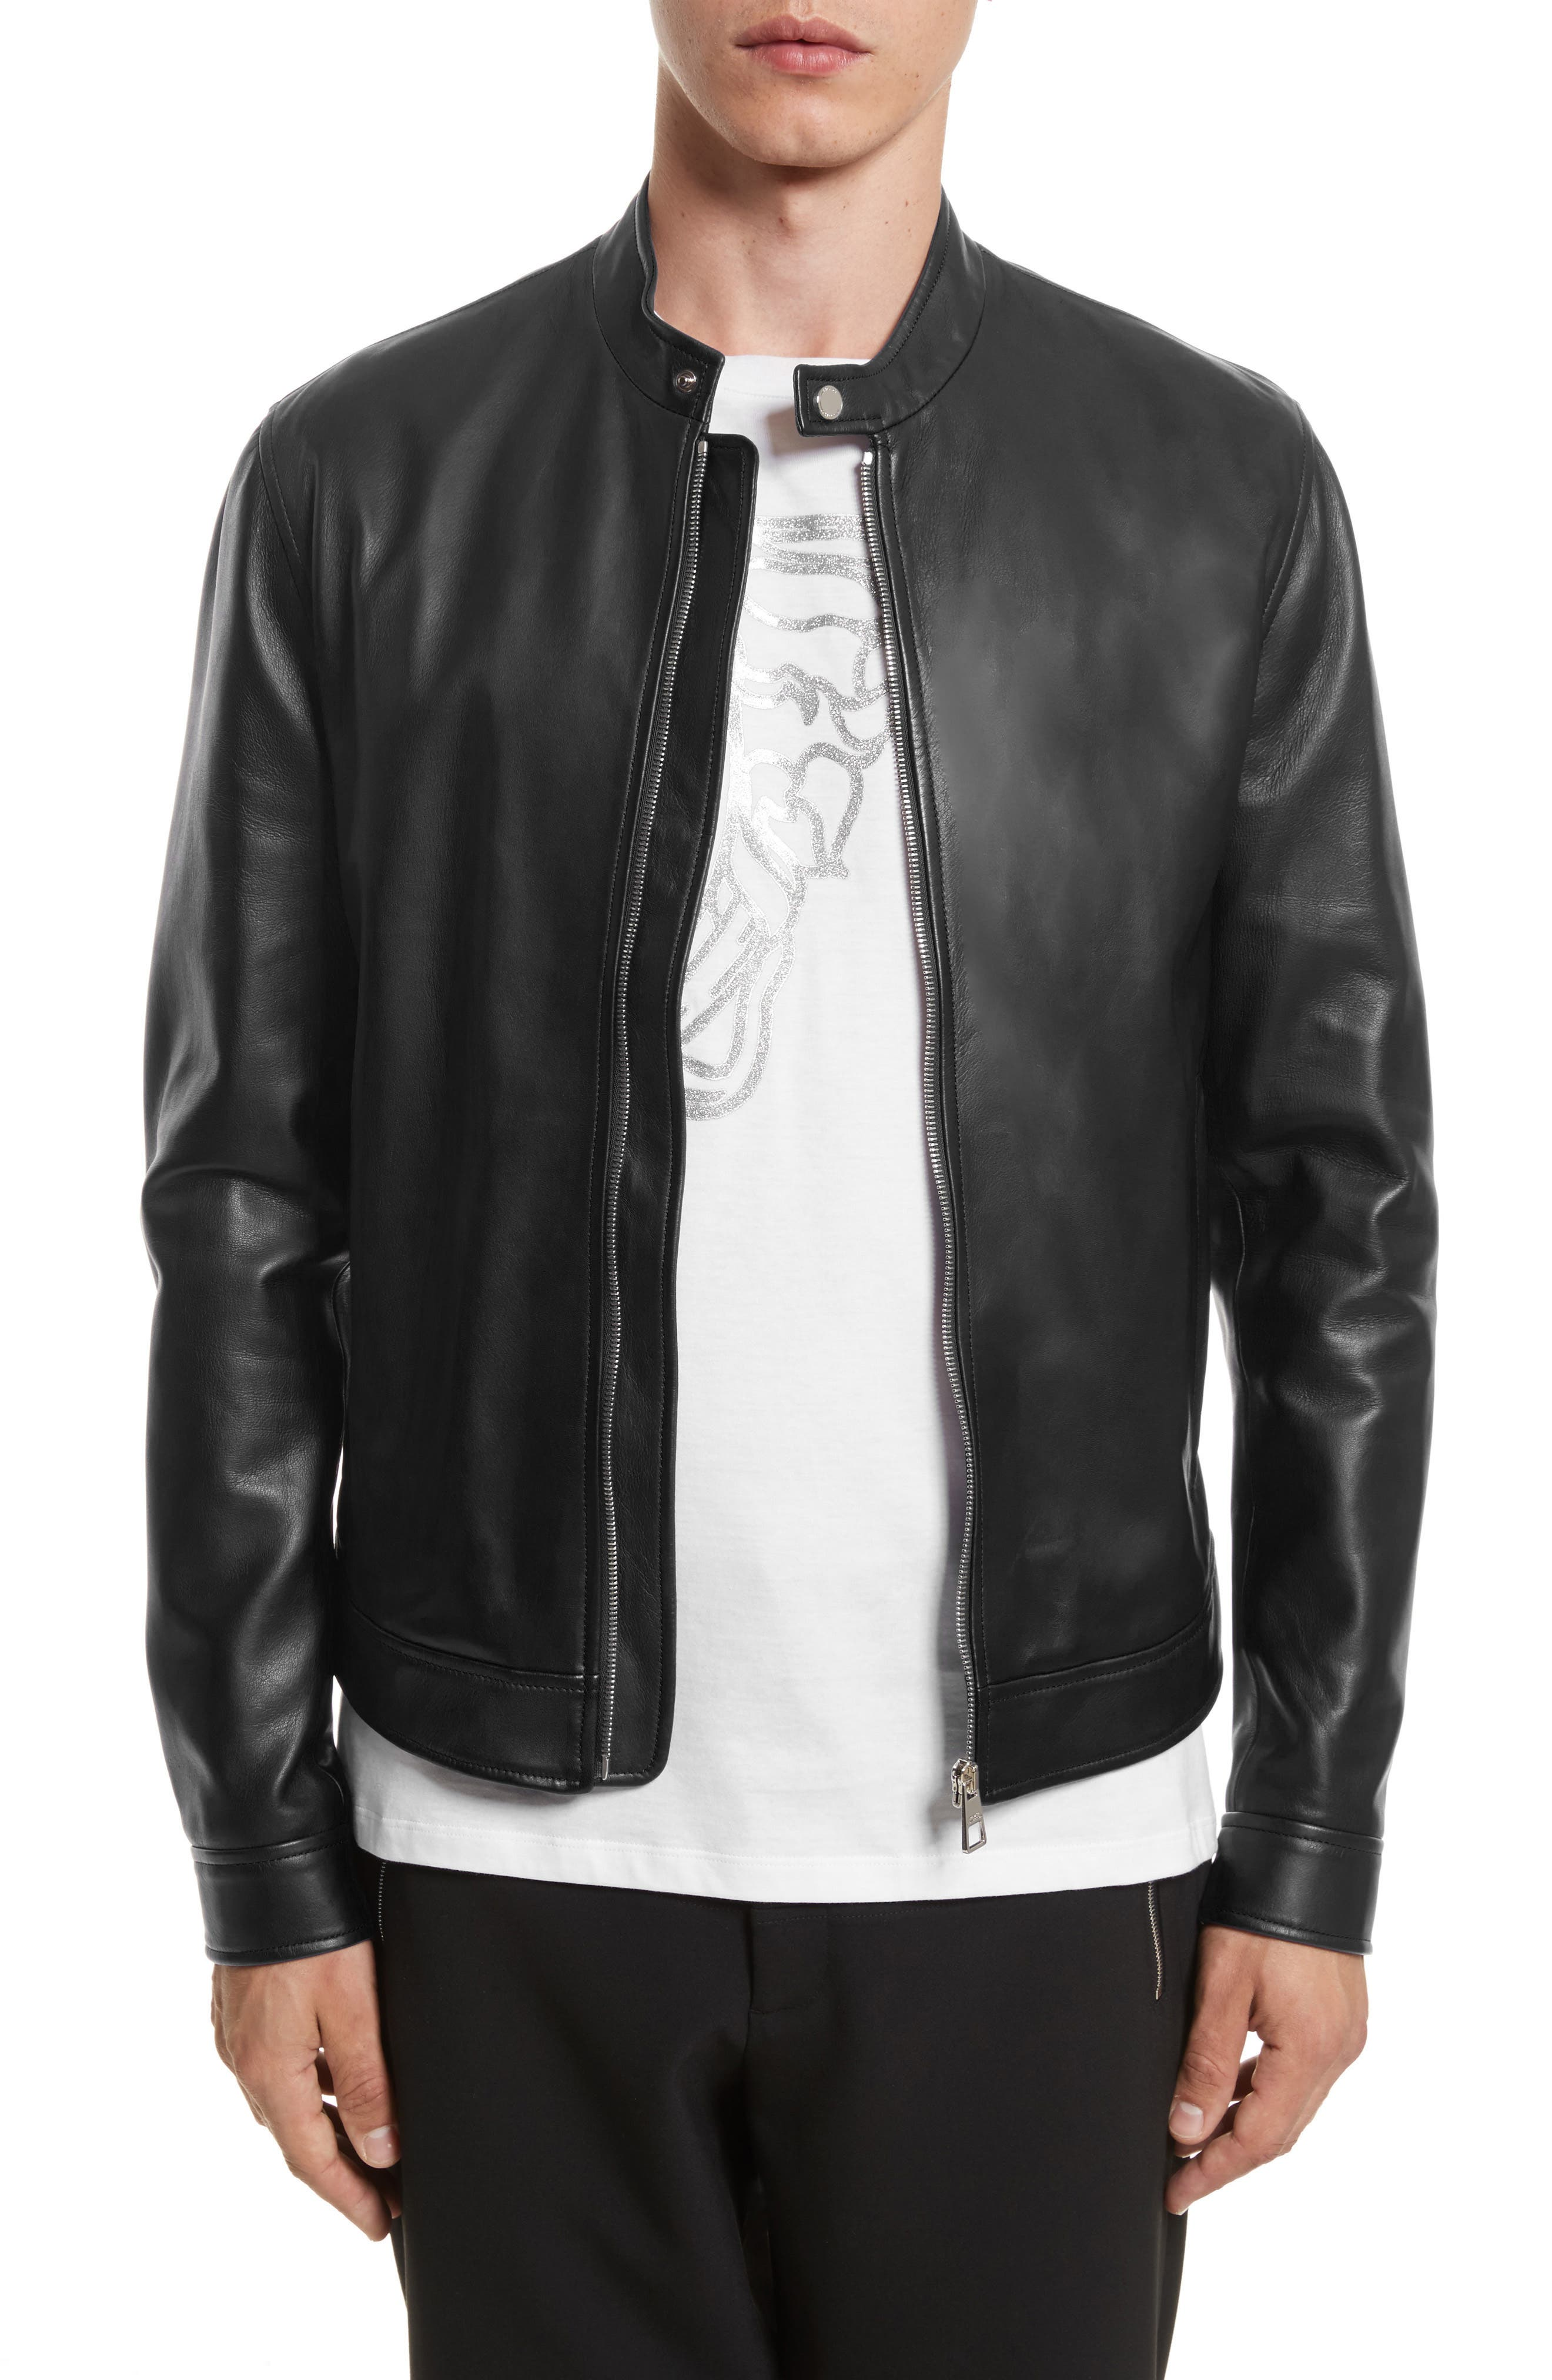 VERSACE COLLECTION, Café Racer Leather Jacket, Main thumbnail 1, color, 130